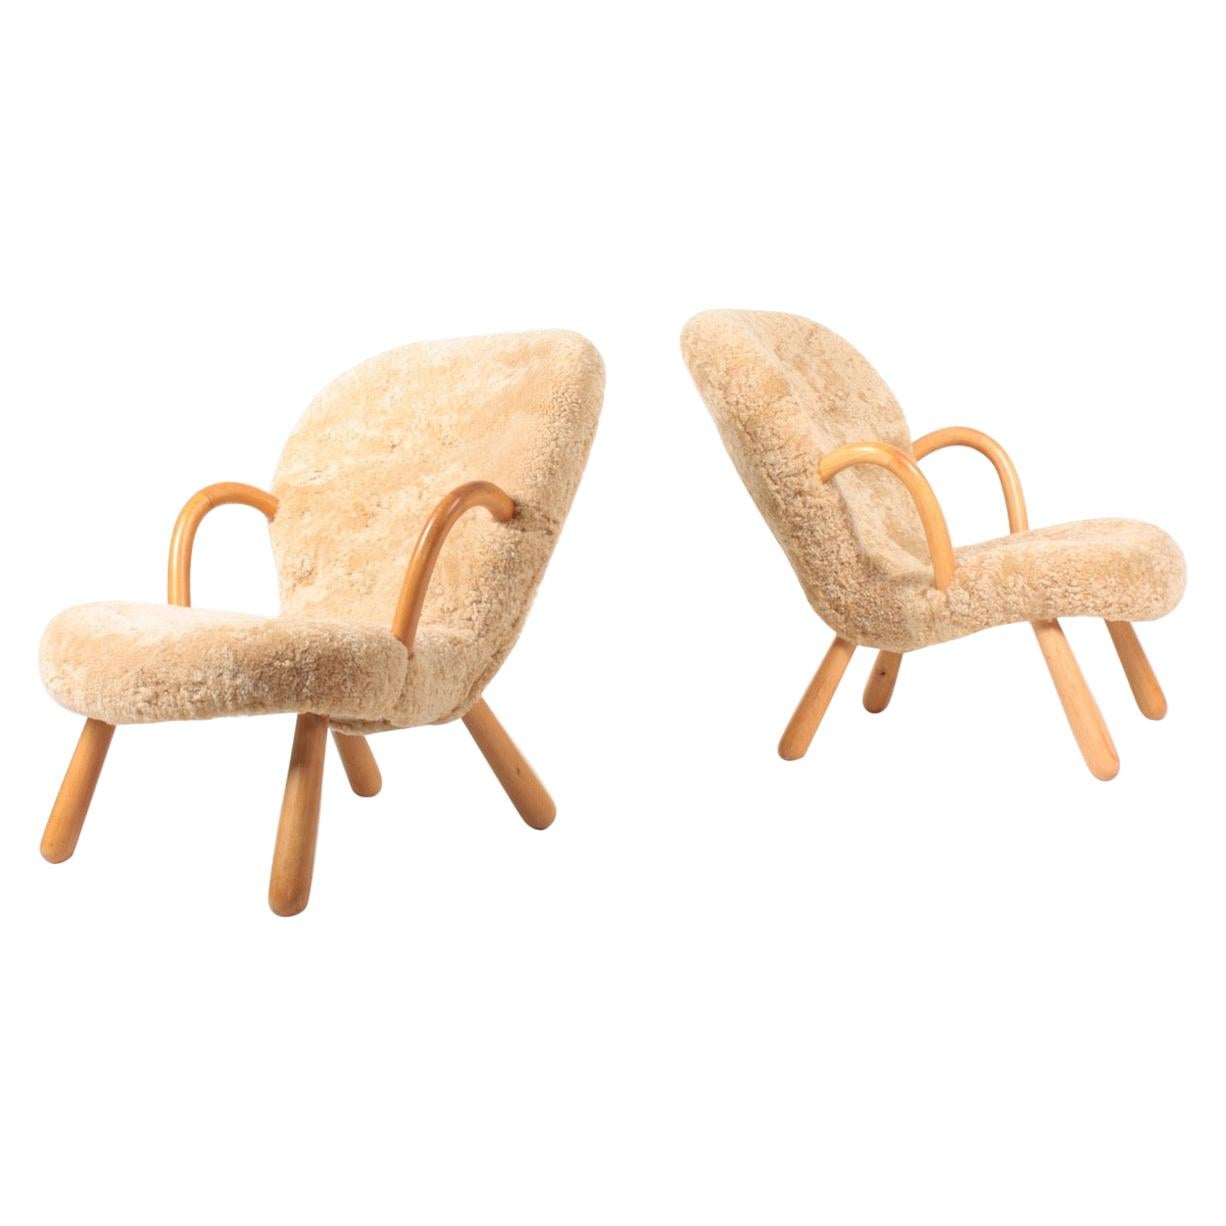 Pair of Original Midcentury Clam Chairs, Made in Denmark, 1940s